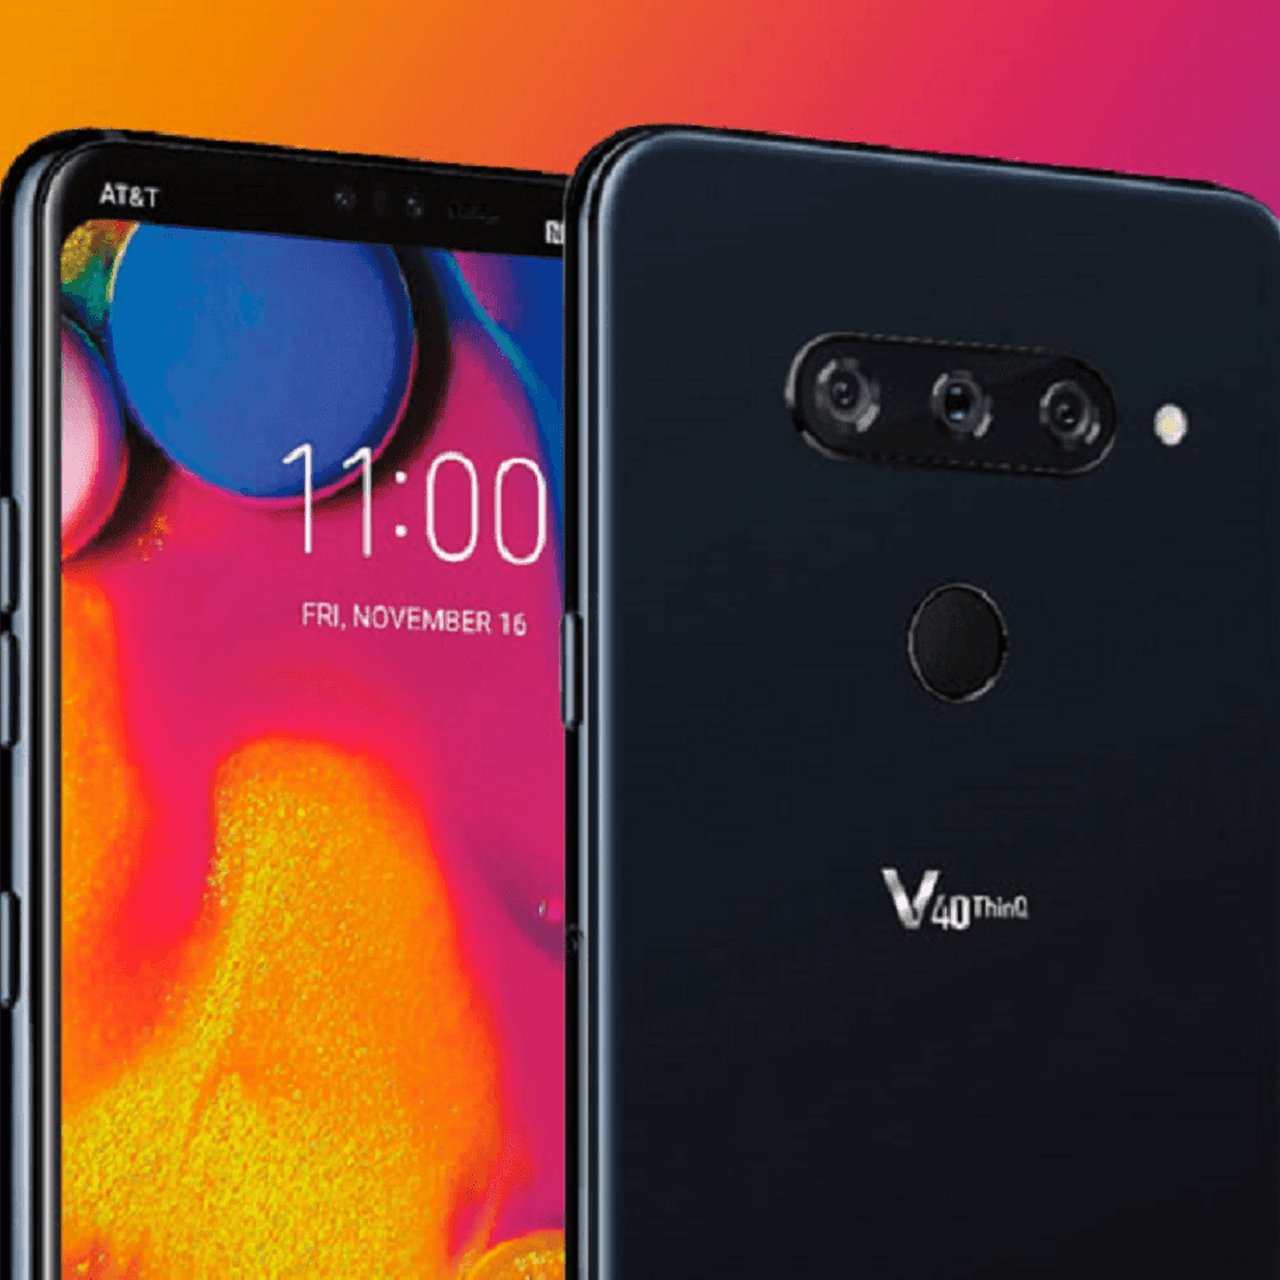 LG V40 ThinQ camera confirmed: 5 eyes on the prize | AndroidPIT